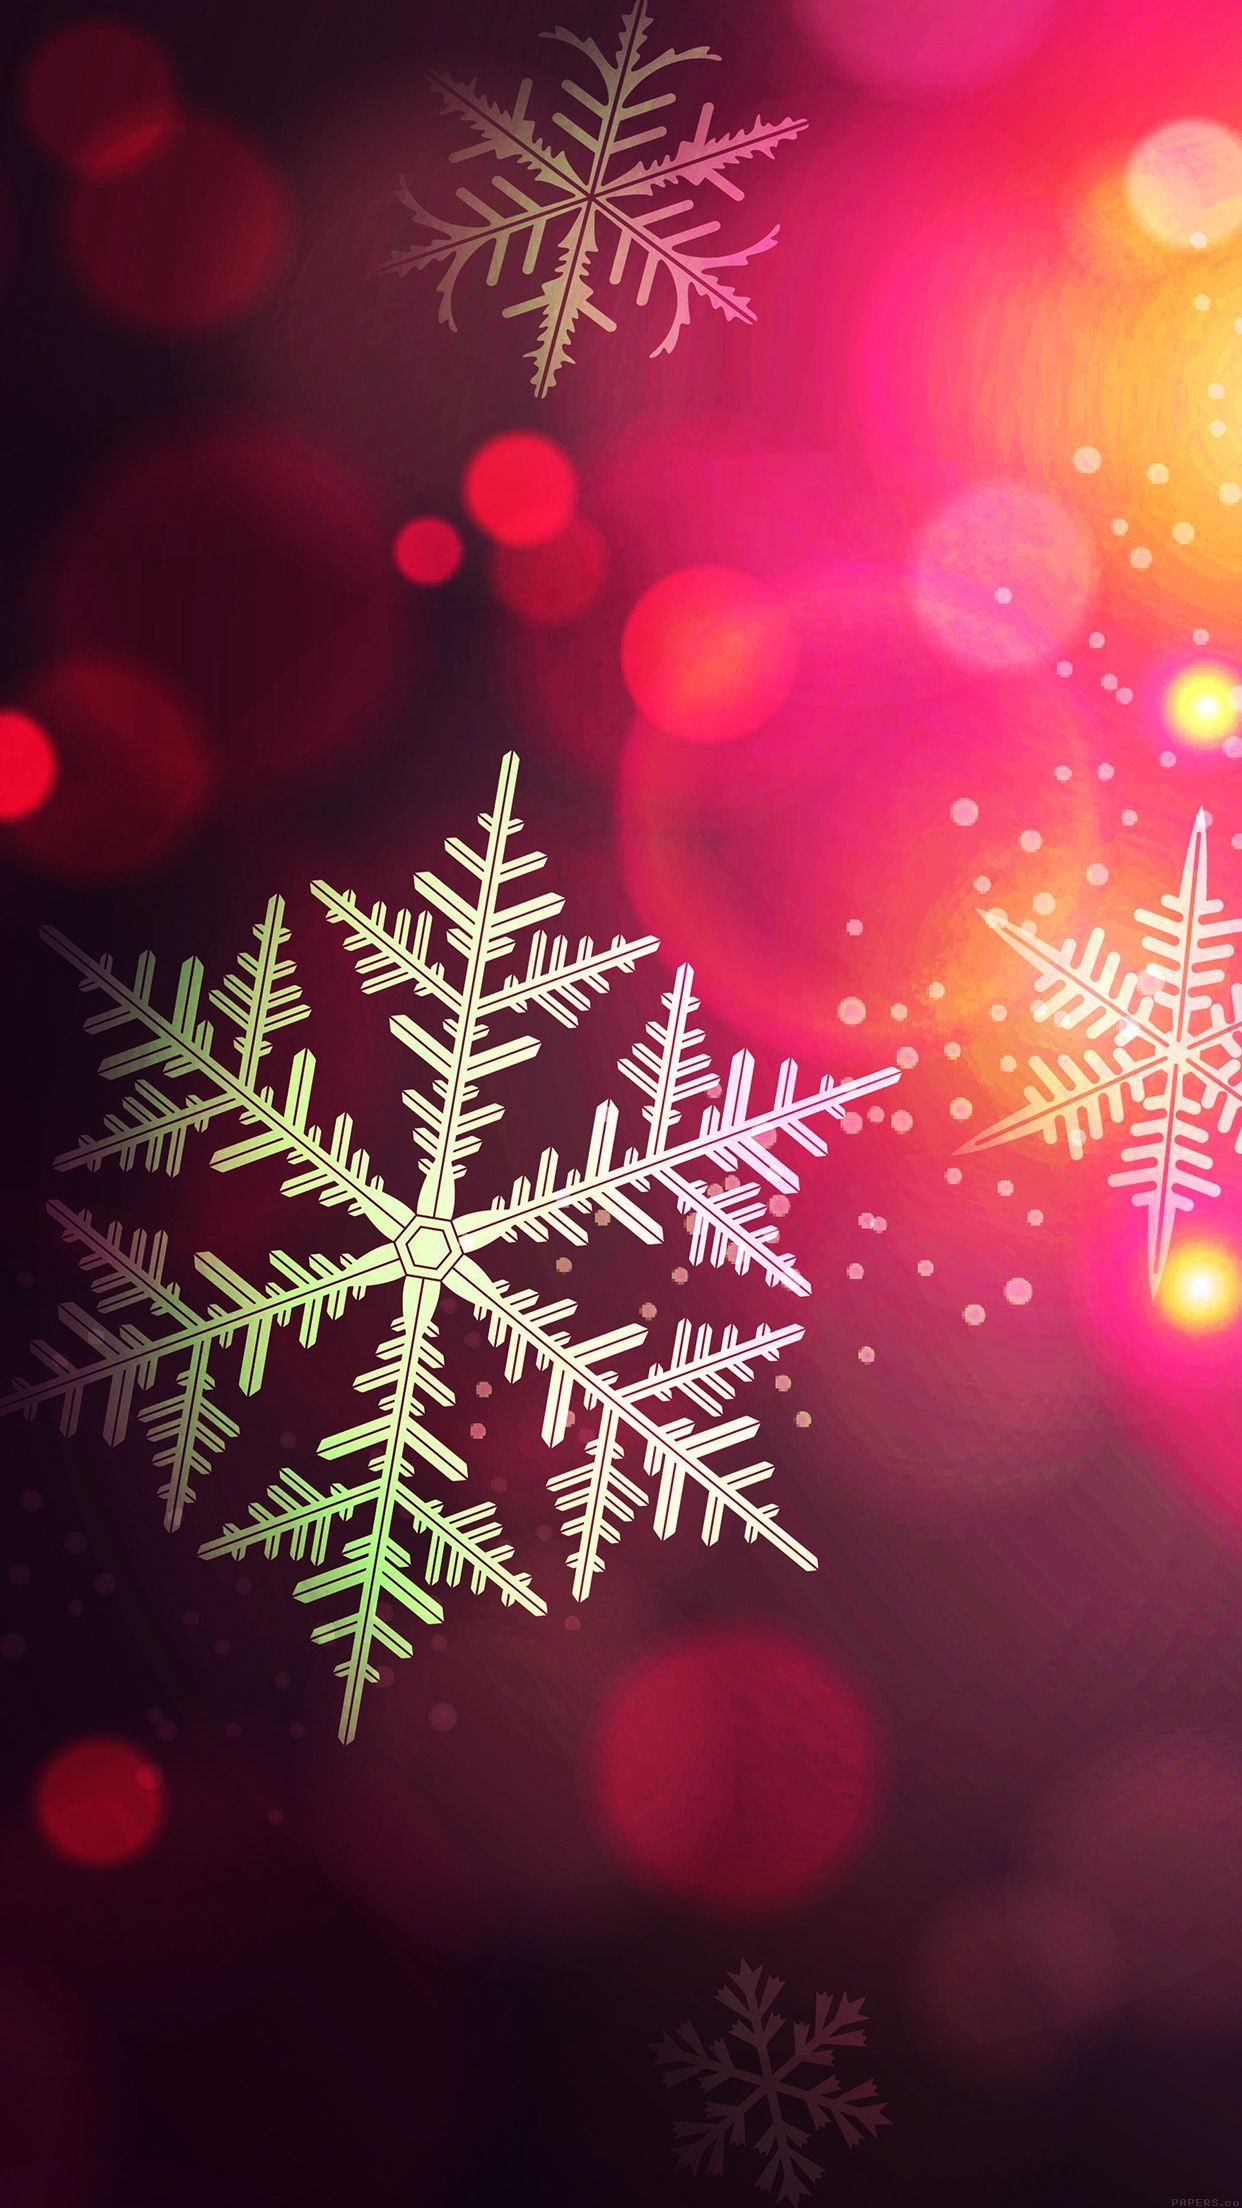 christmas wallpaper for iphone 6 plus